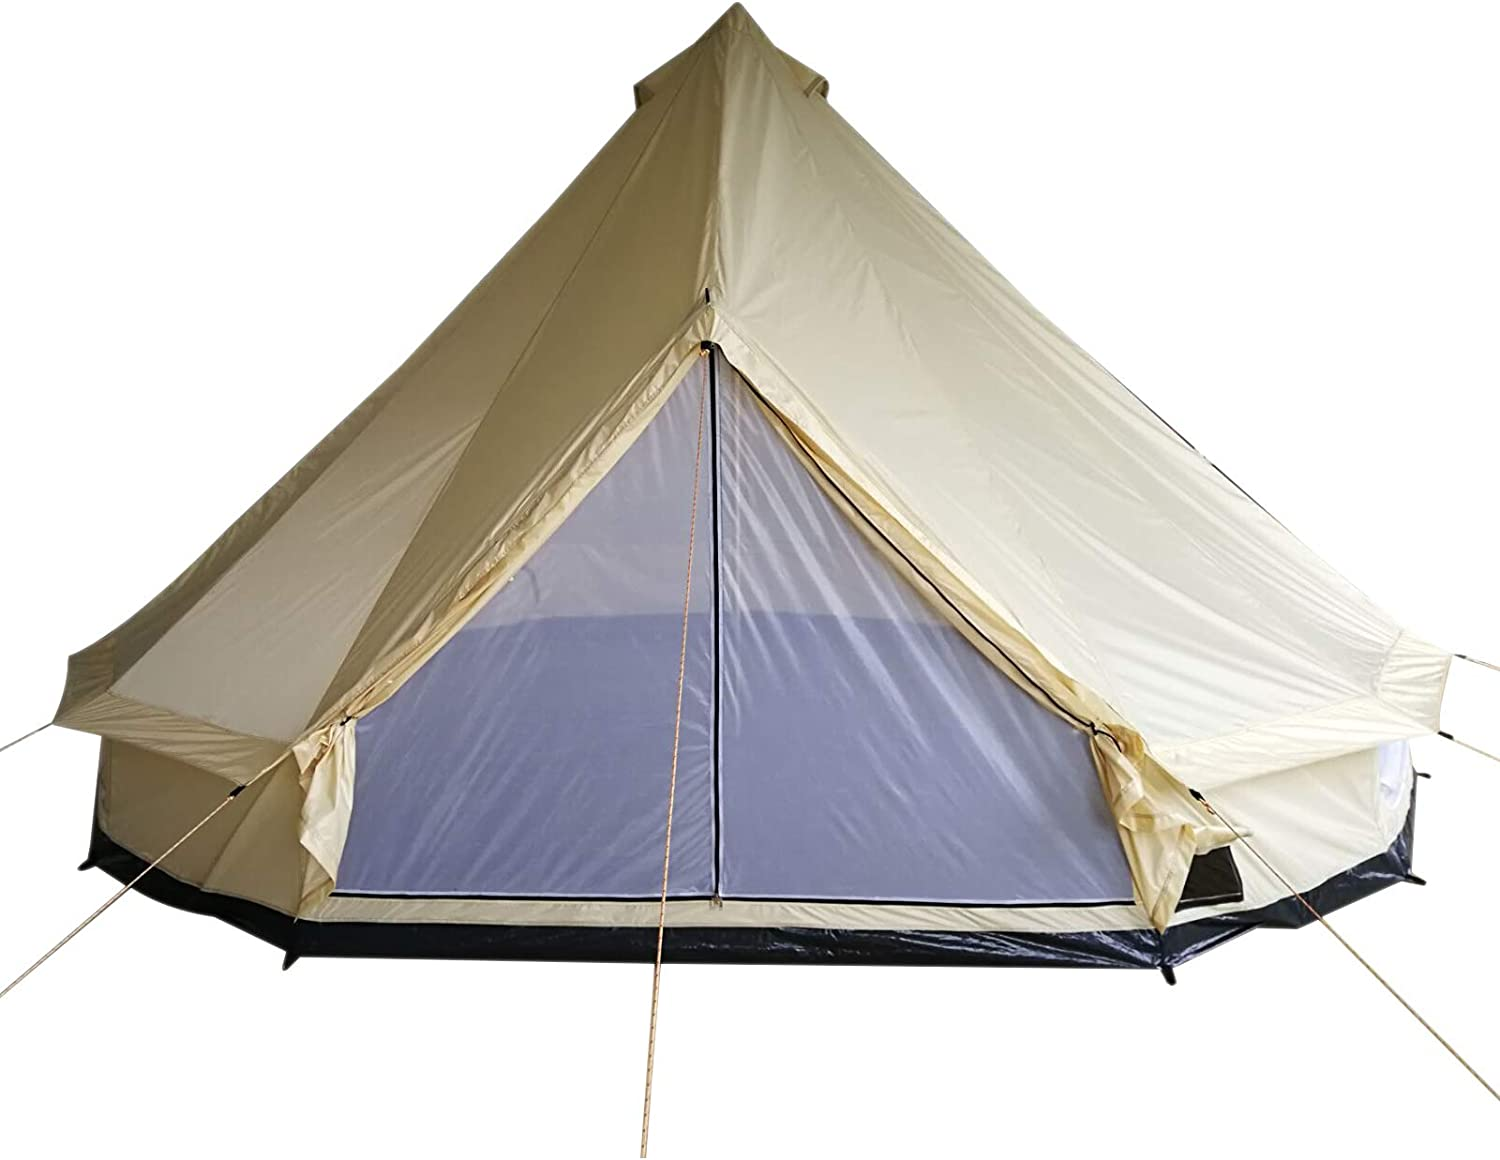 Outsunny 16.4' Large Family Teepee Tent Canvas Bell Tent Camp Shelter in All Seasons for Camping Hunting Beige